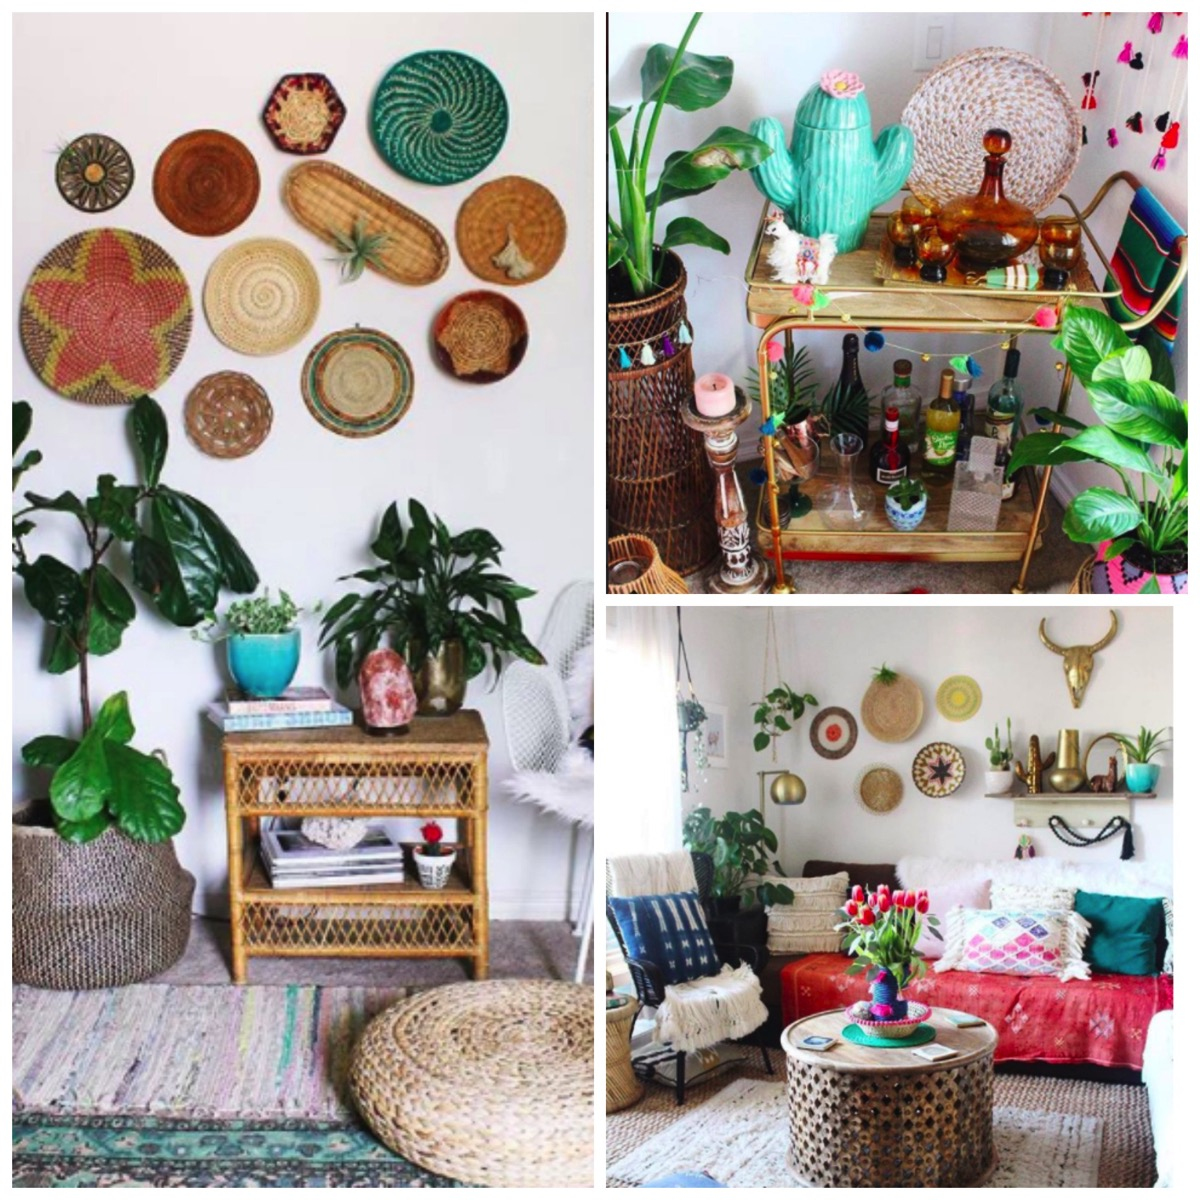 Boho living room organization and decor ideas fun and colorful